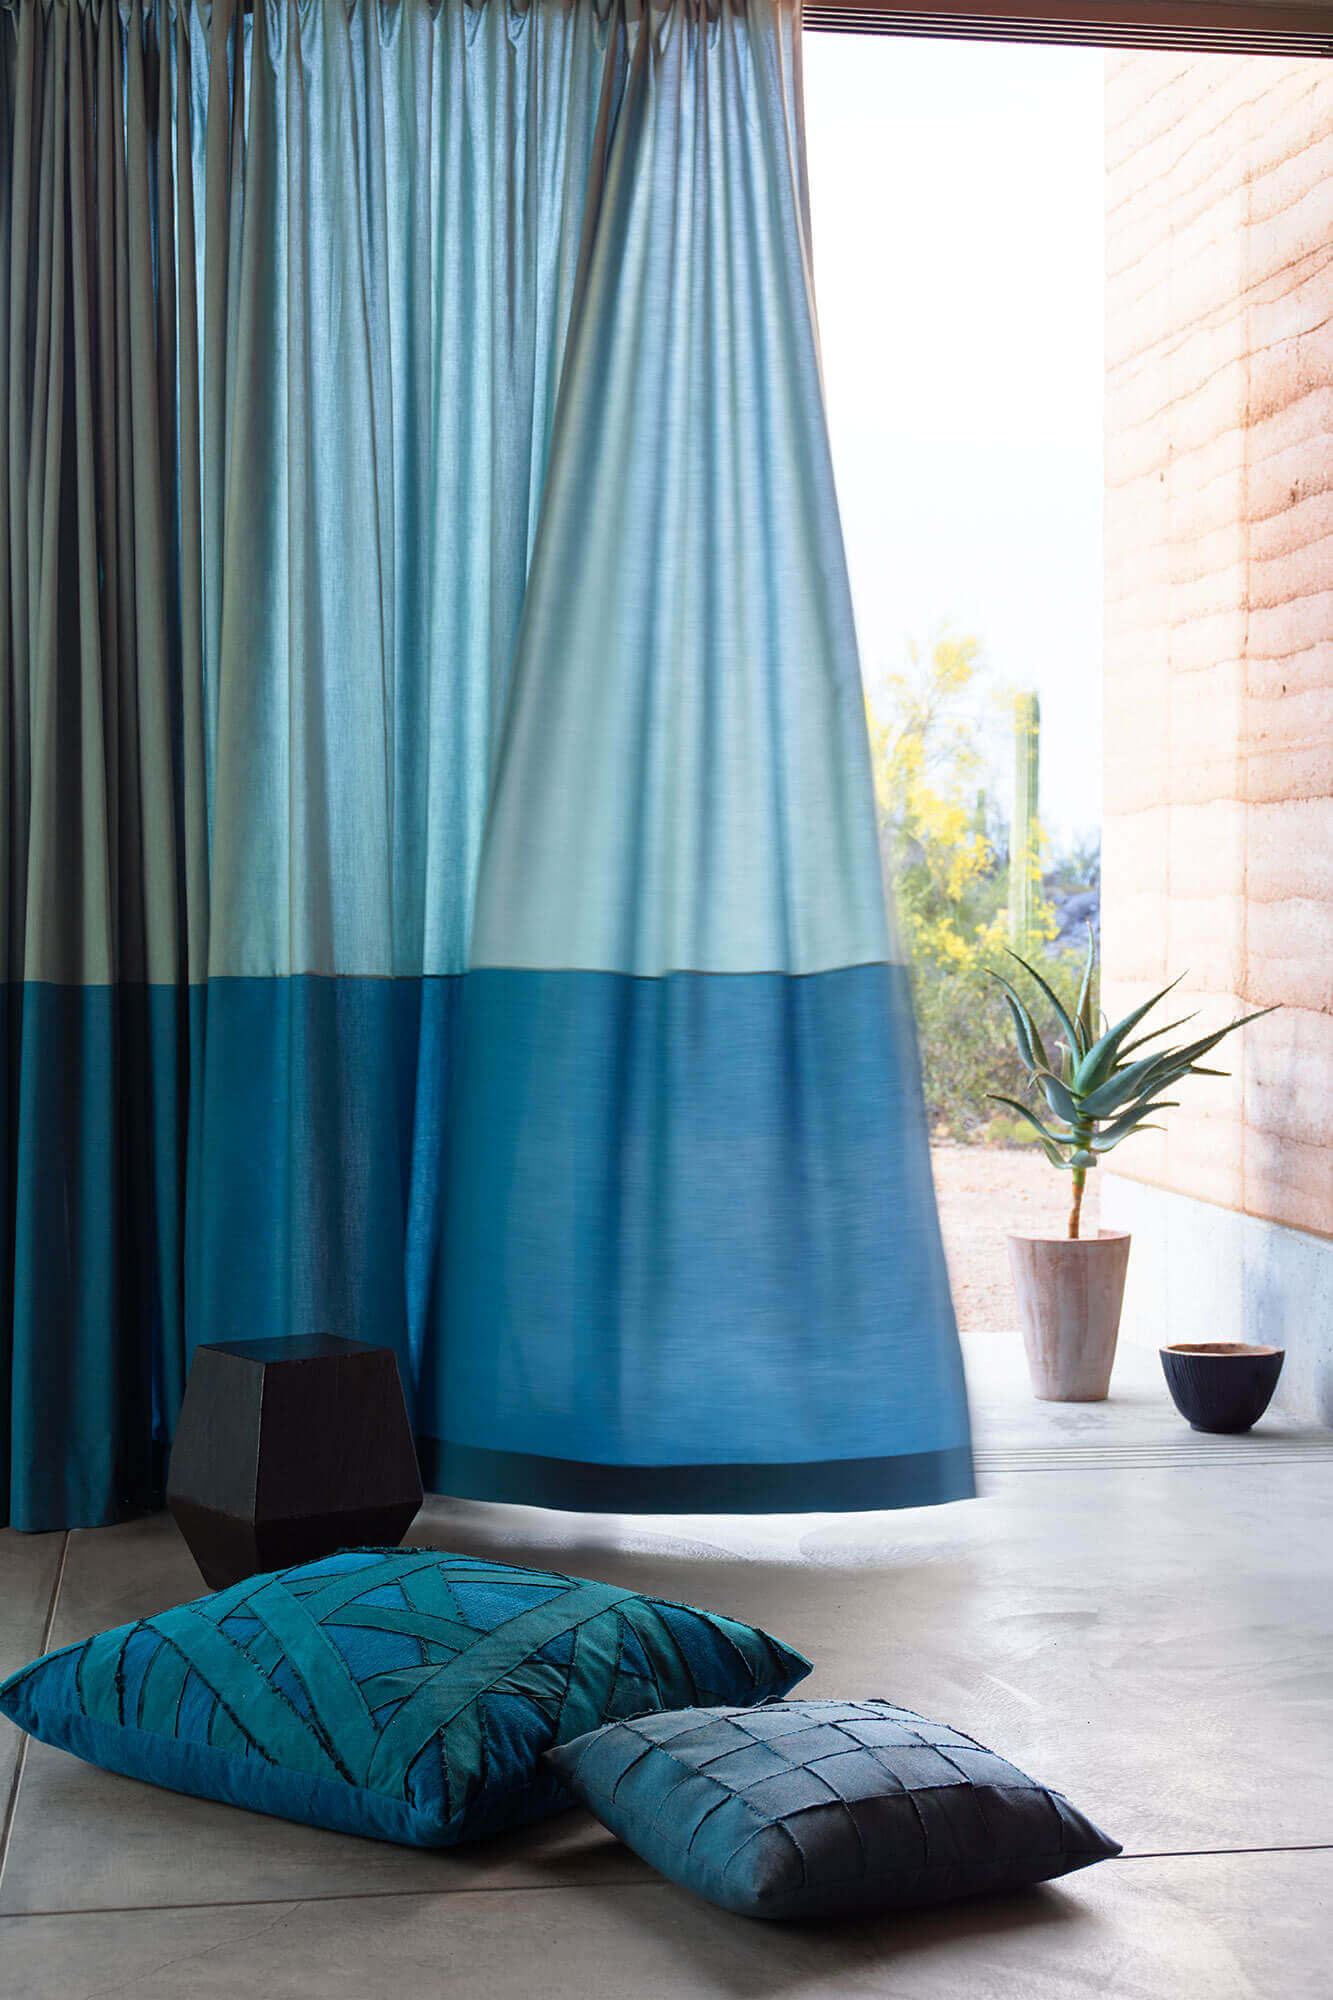 Blue drapery flows in the wind with decorative pillows on the floor